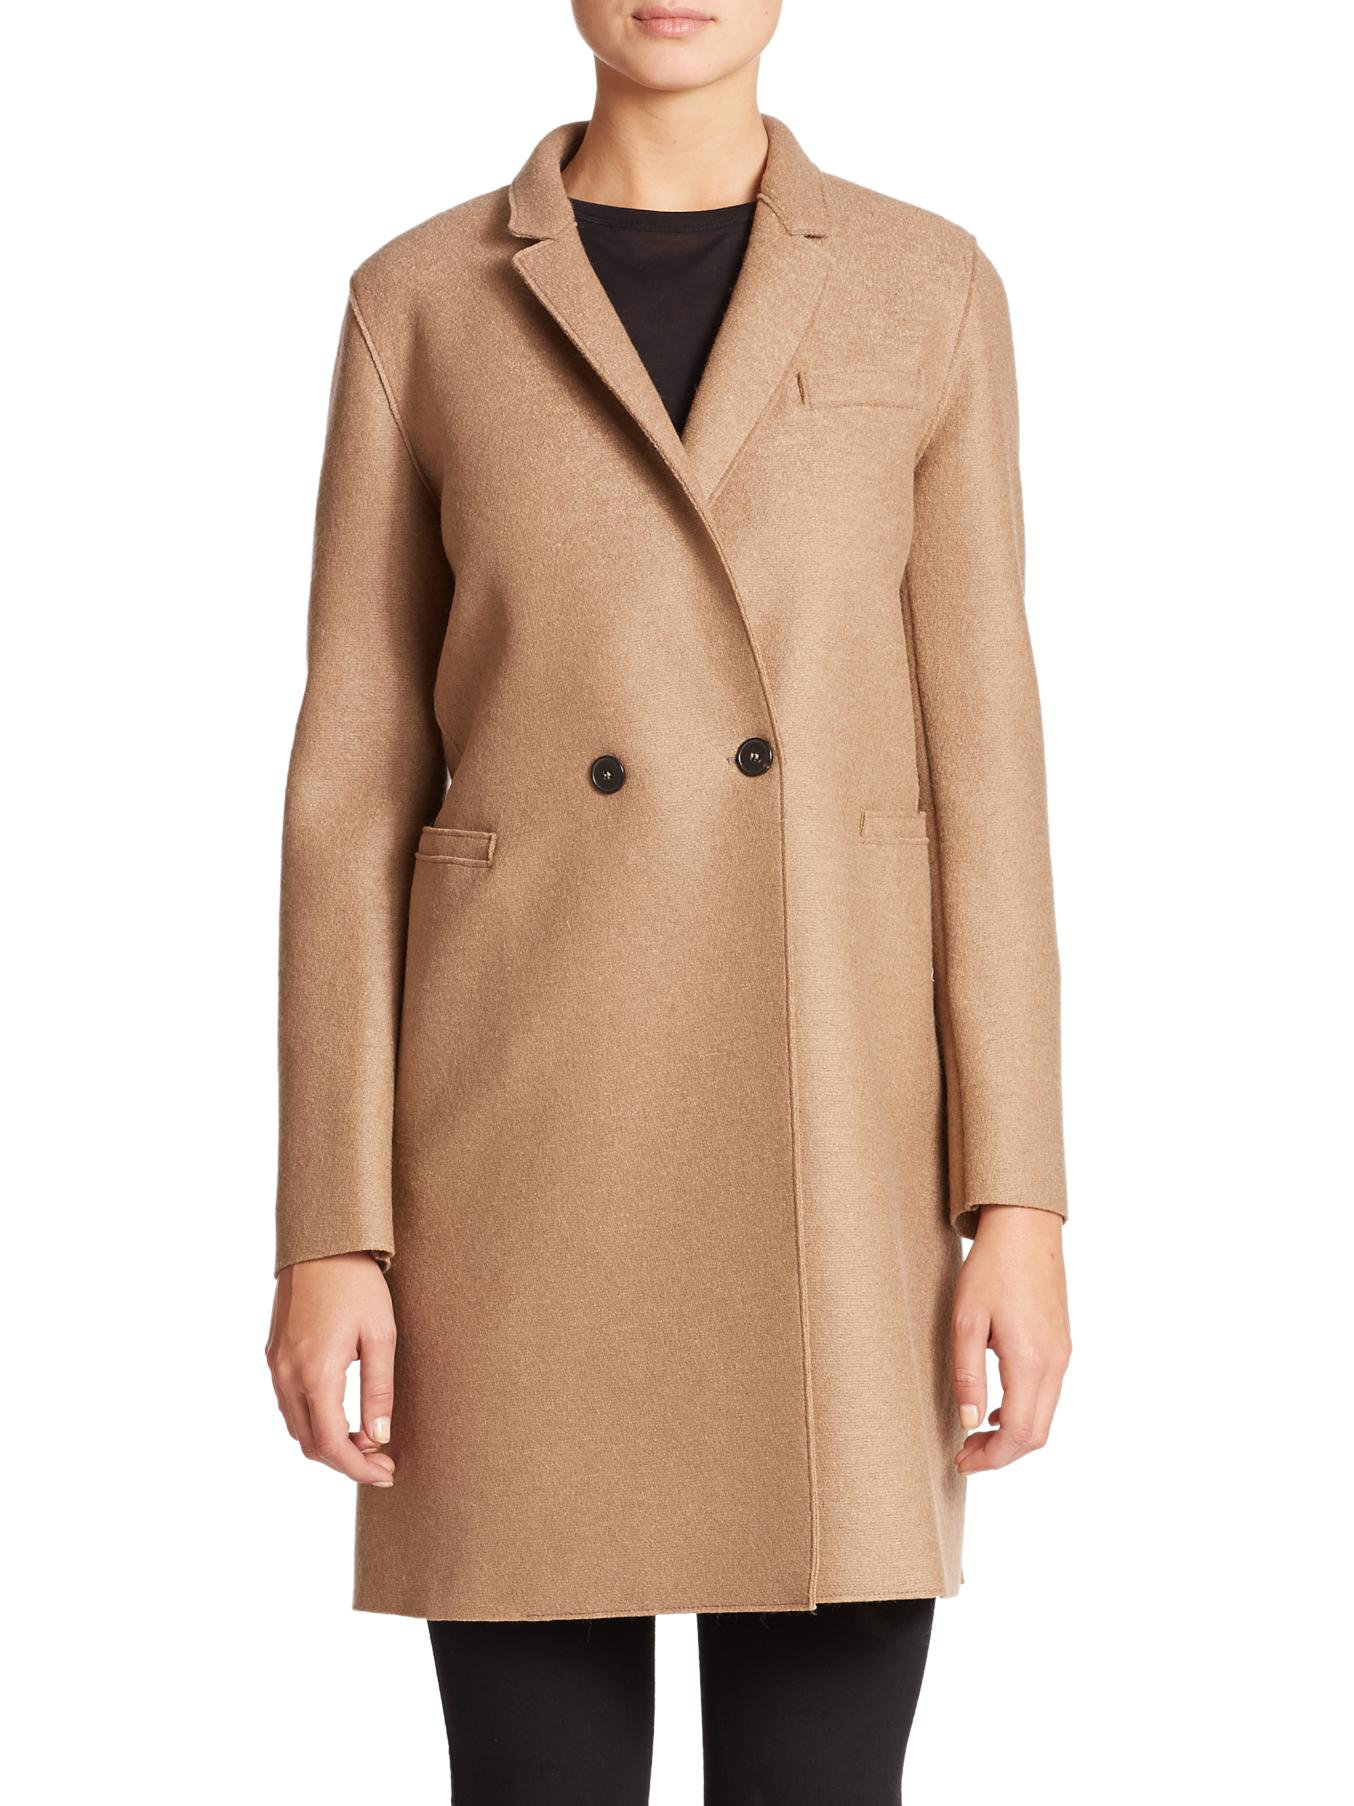 harris wharf london wool double breasted coat in beige camel lyst. Black Bedroom Furniture Sets. Home Design Ideas